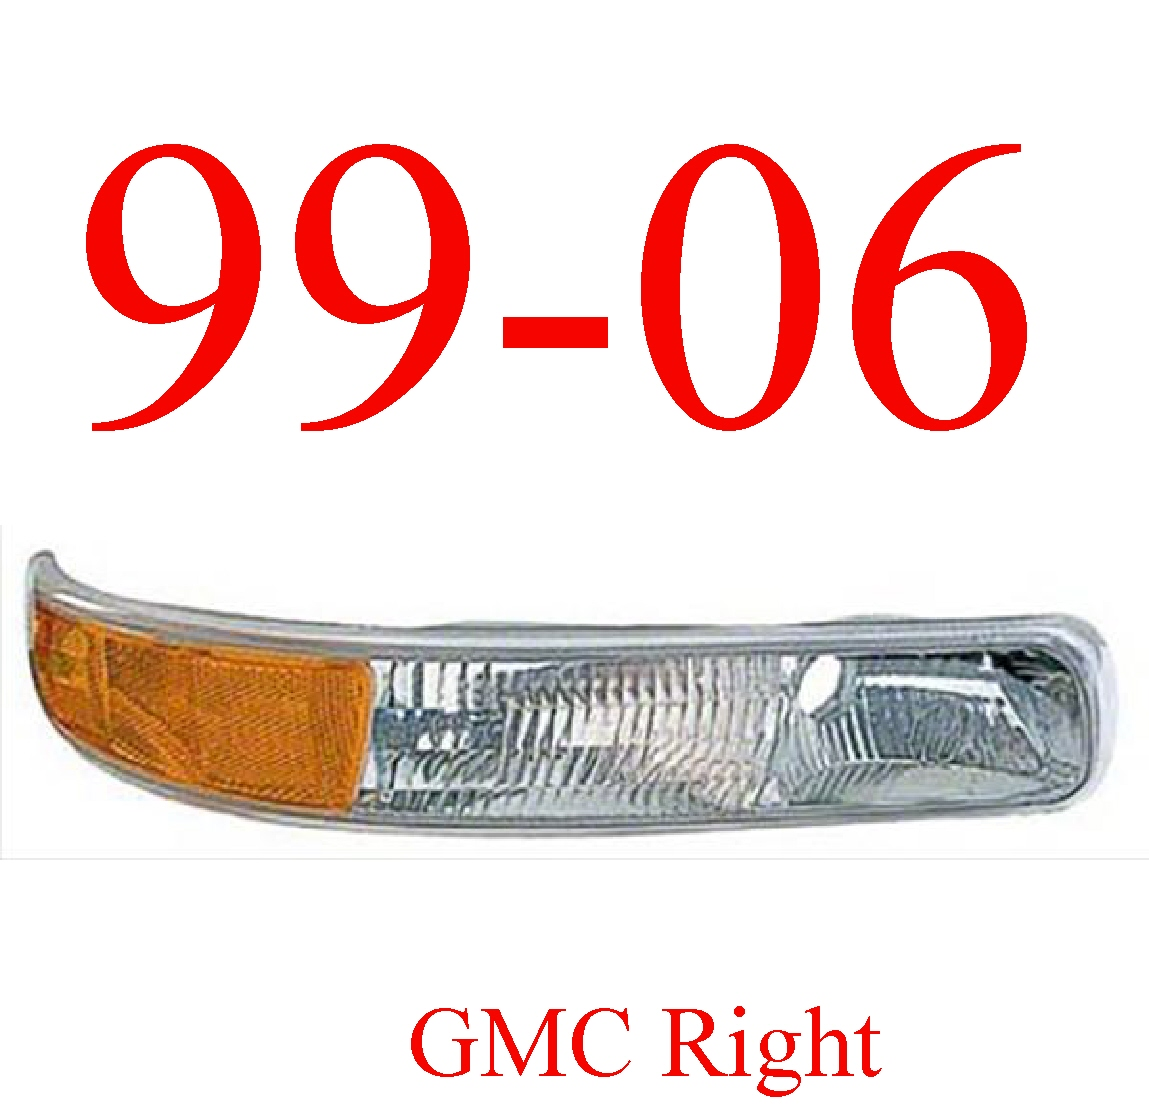 99-06 GMC Truck Right Park Light Assembly